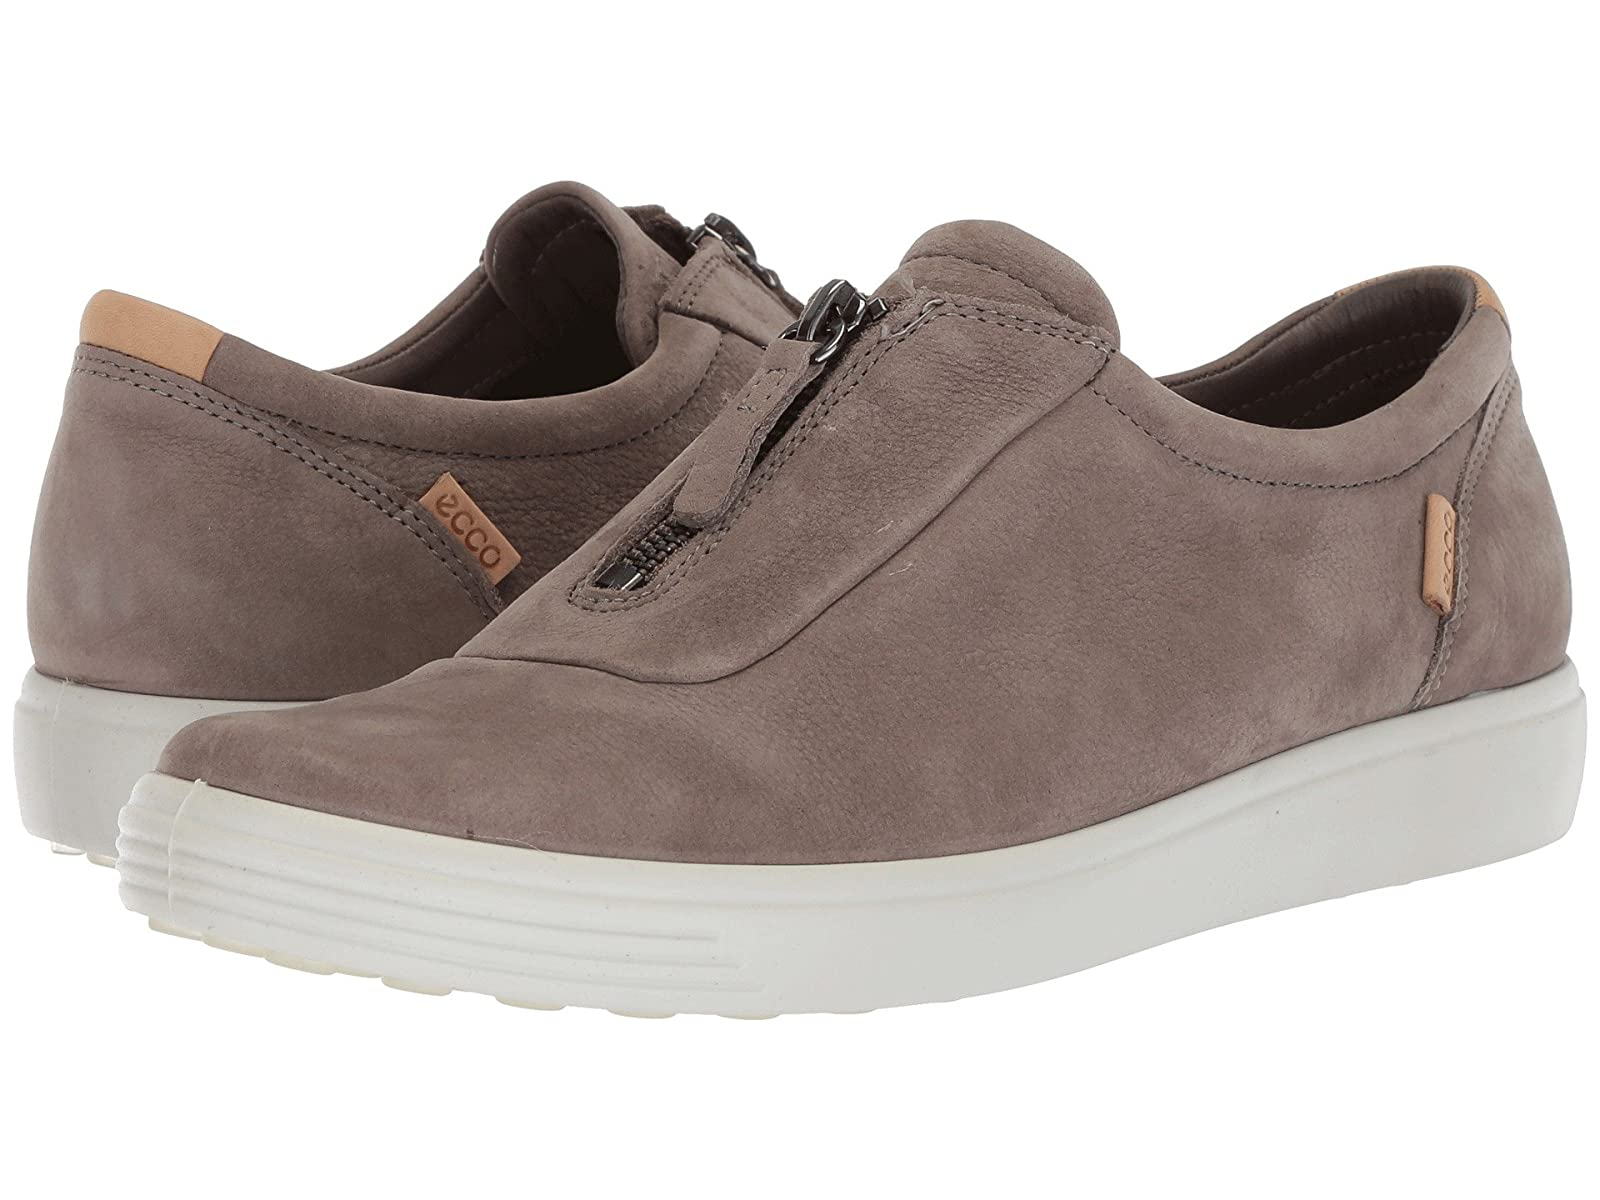 ECCO Soft 7 ZipAtmospheric grades have affordable shoes